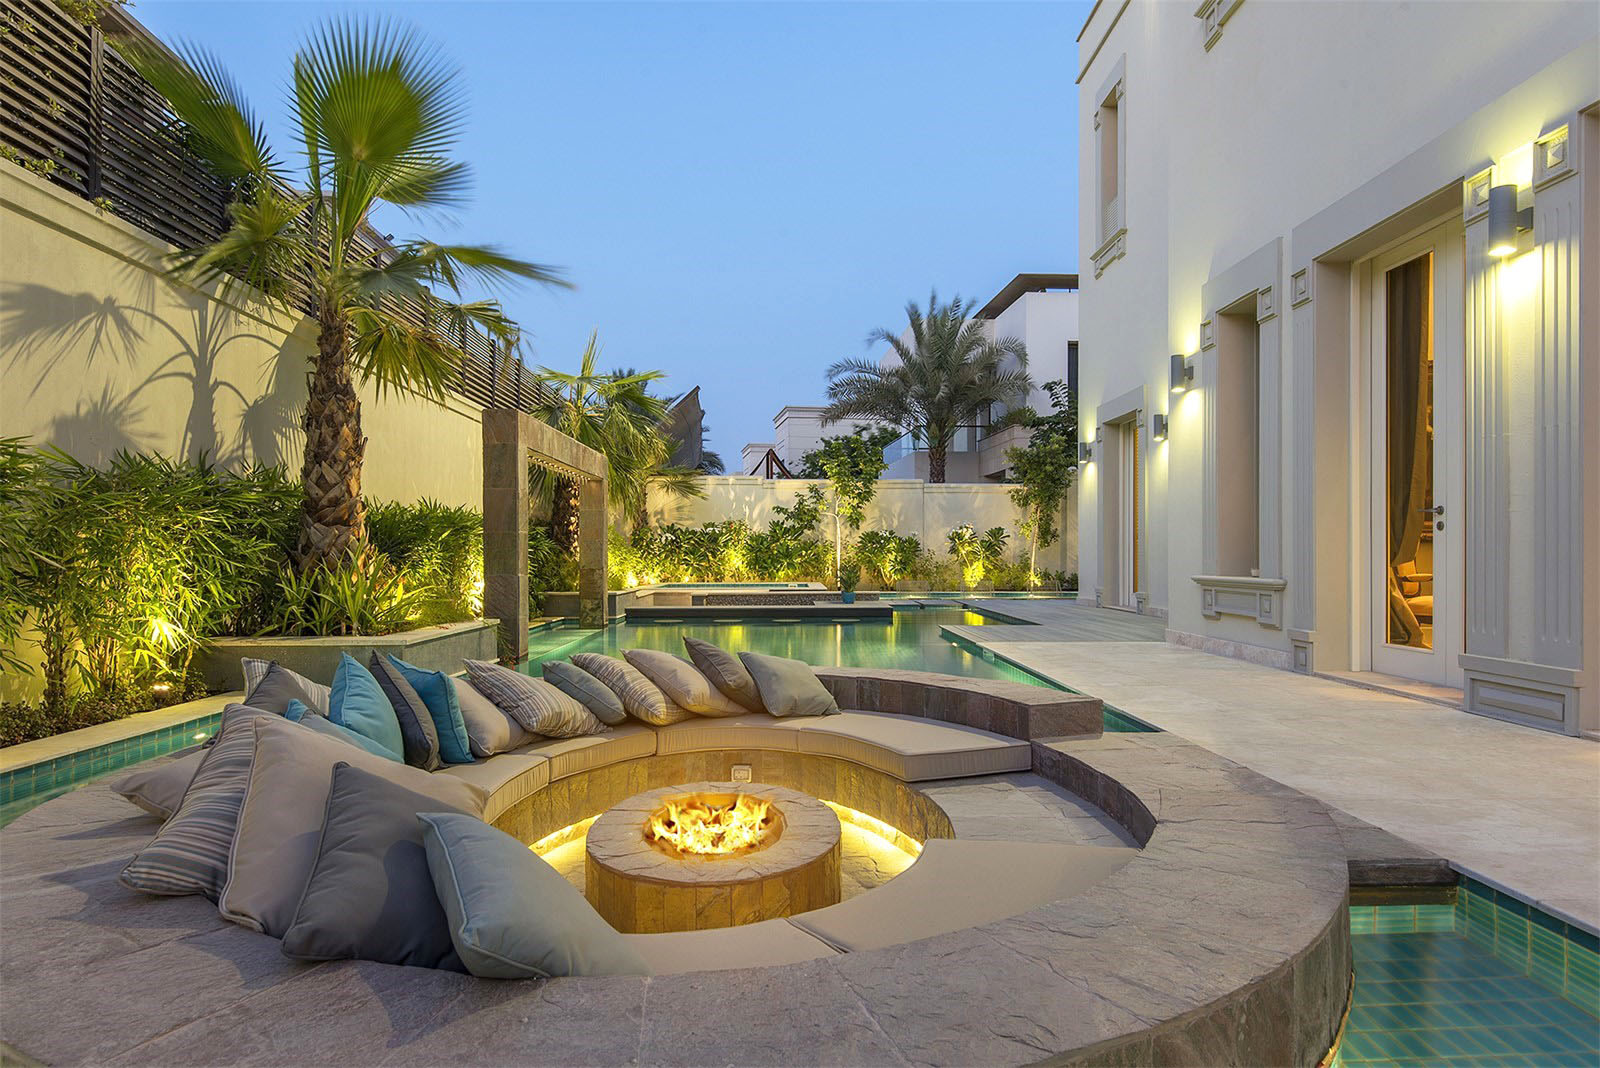 emirates hills luxury villa in dubai - Home Decor Dubai